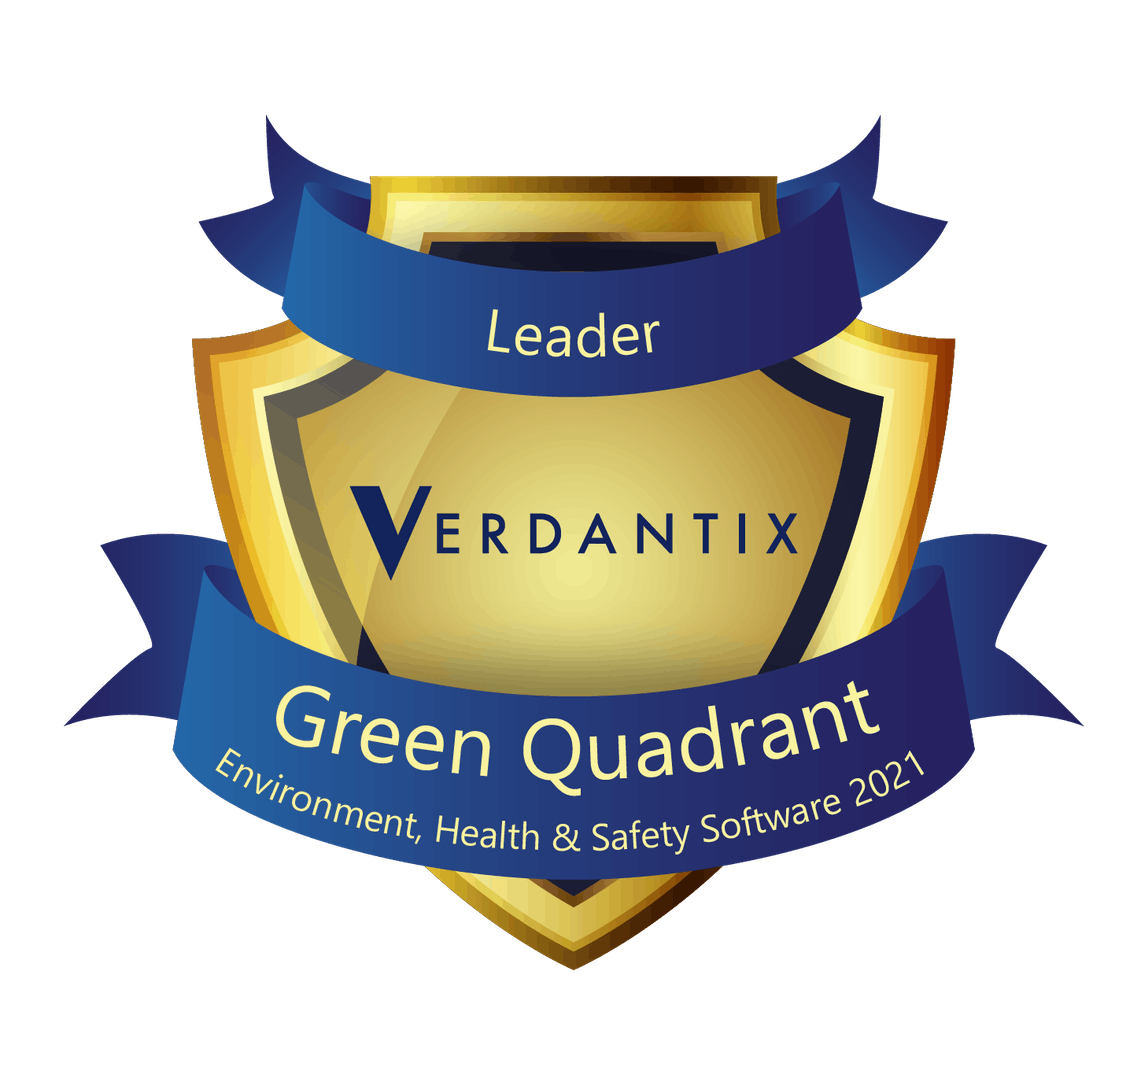 Verdantix Green Quadrant Leader